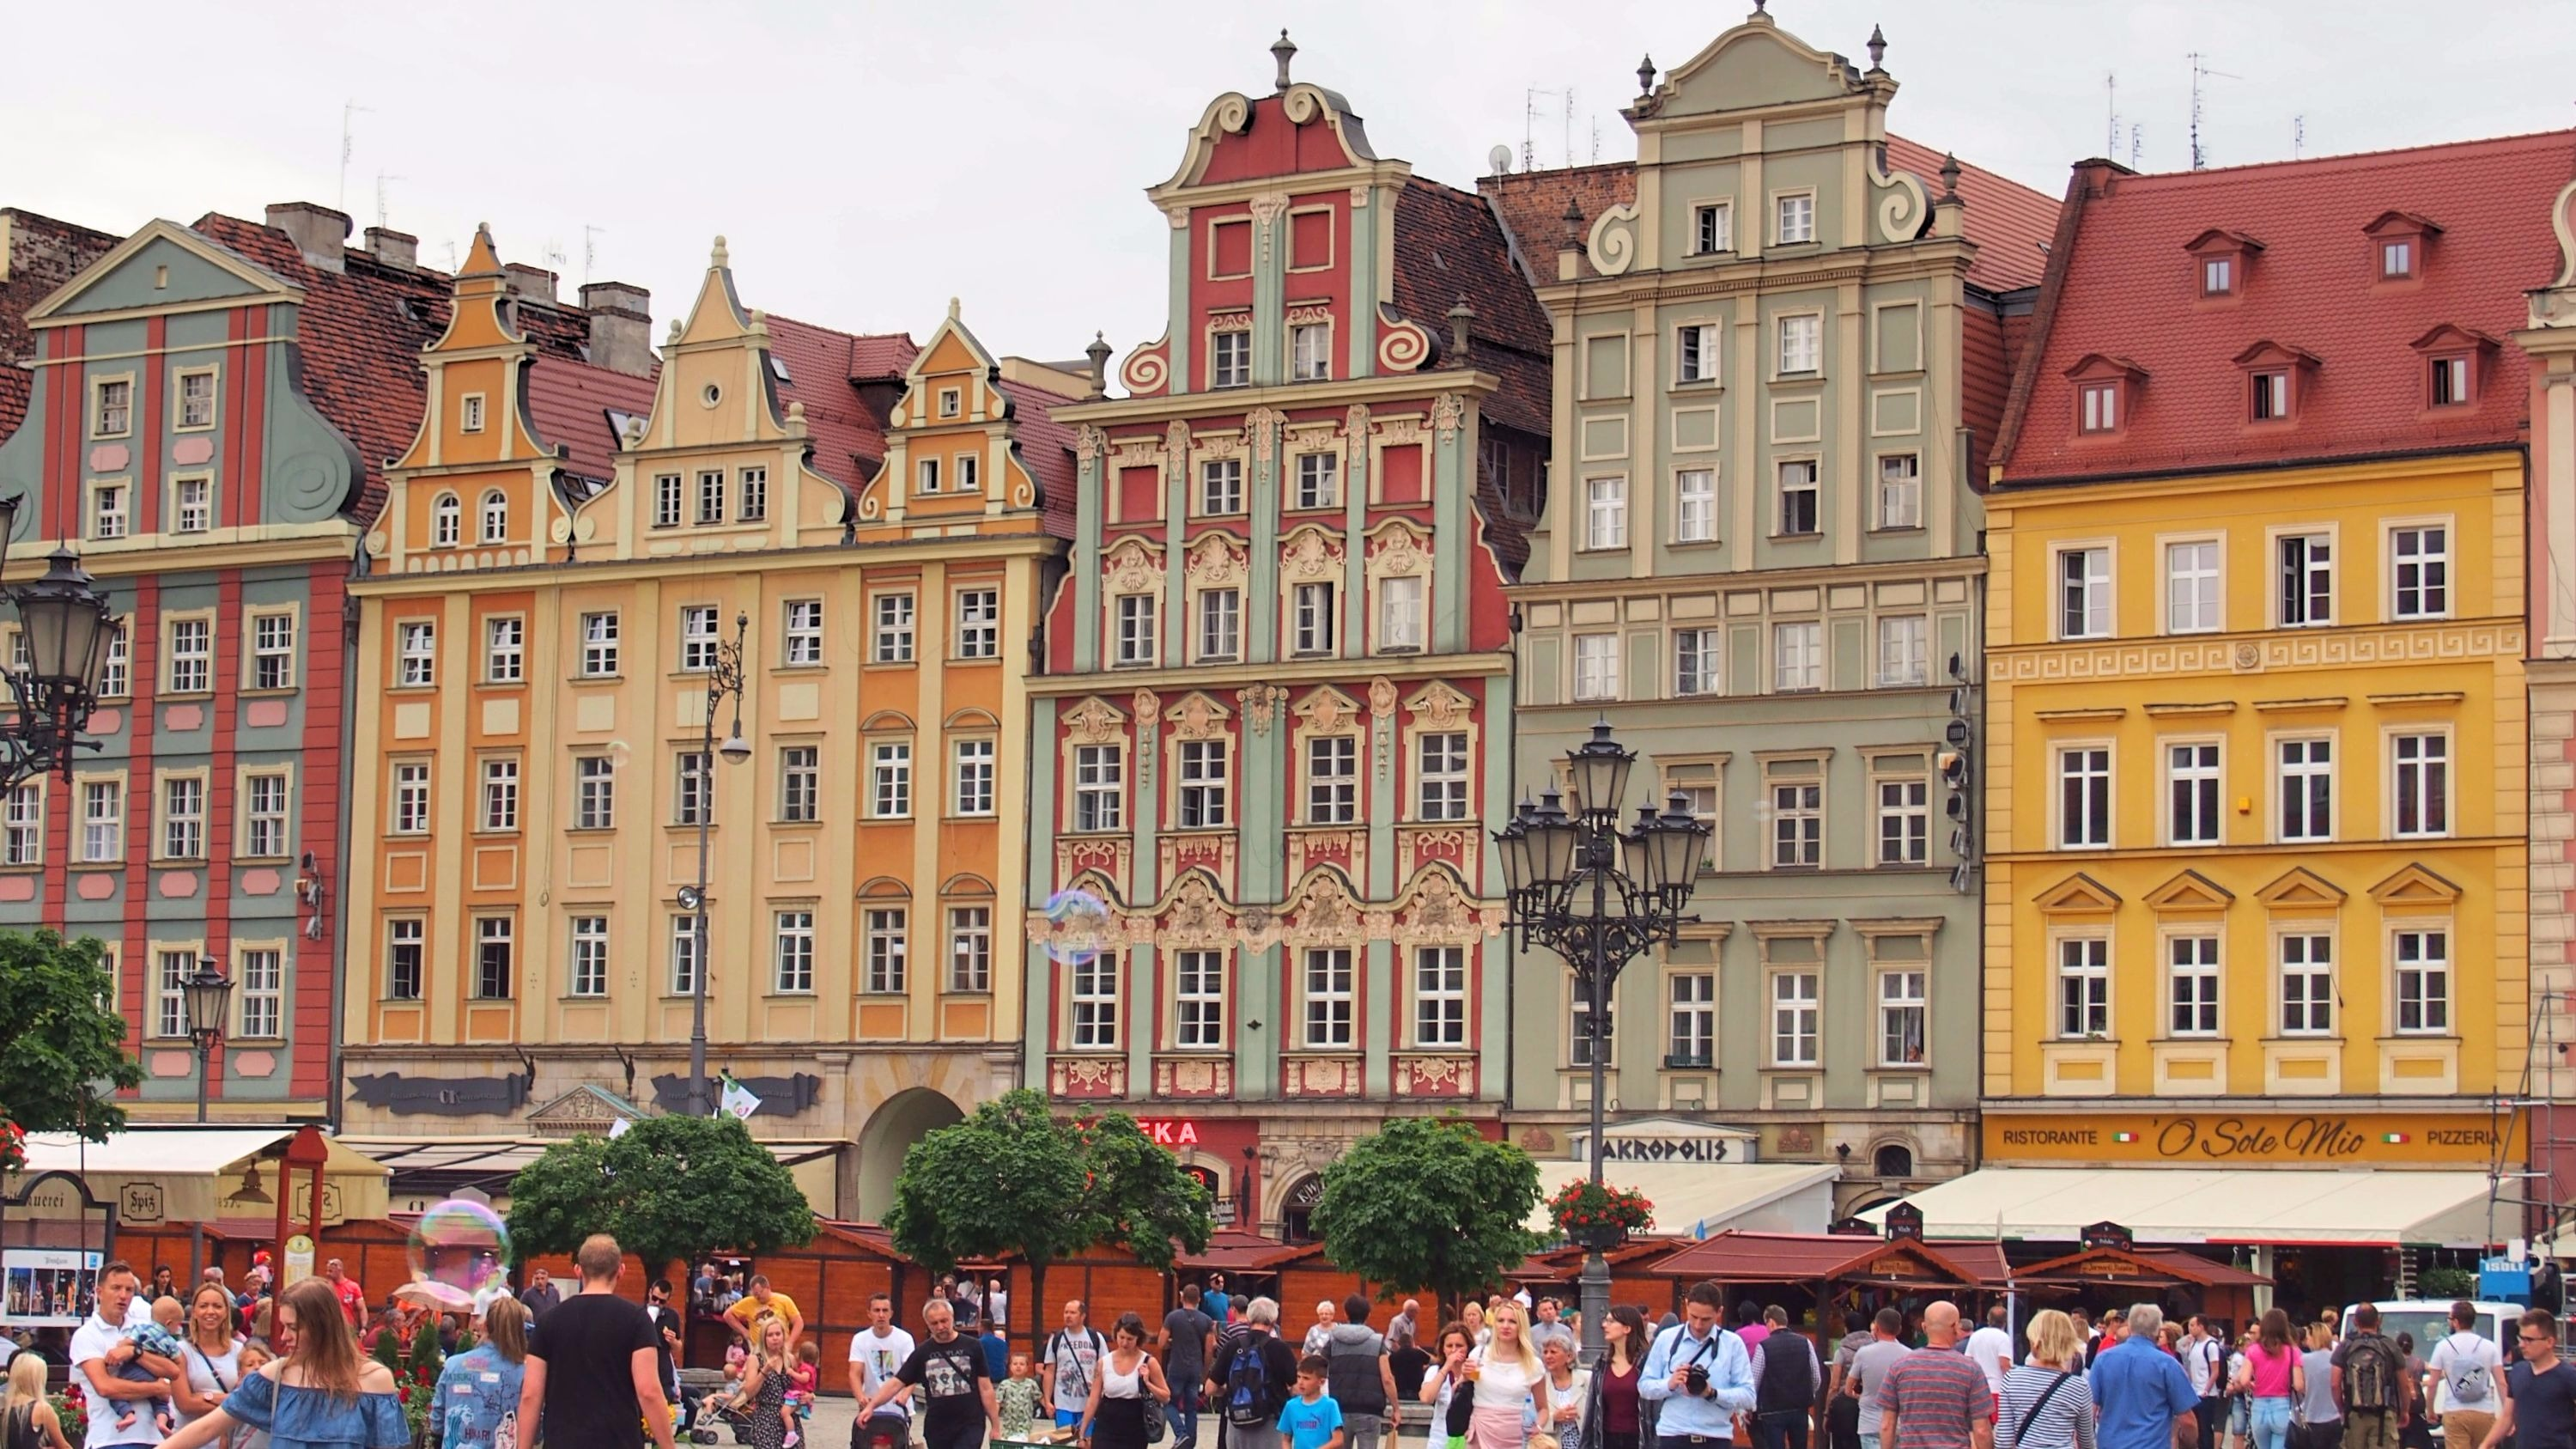 7 Reasons Wroclaw Should be your Next City Break